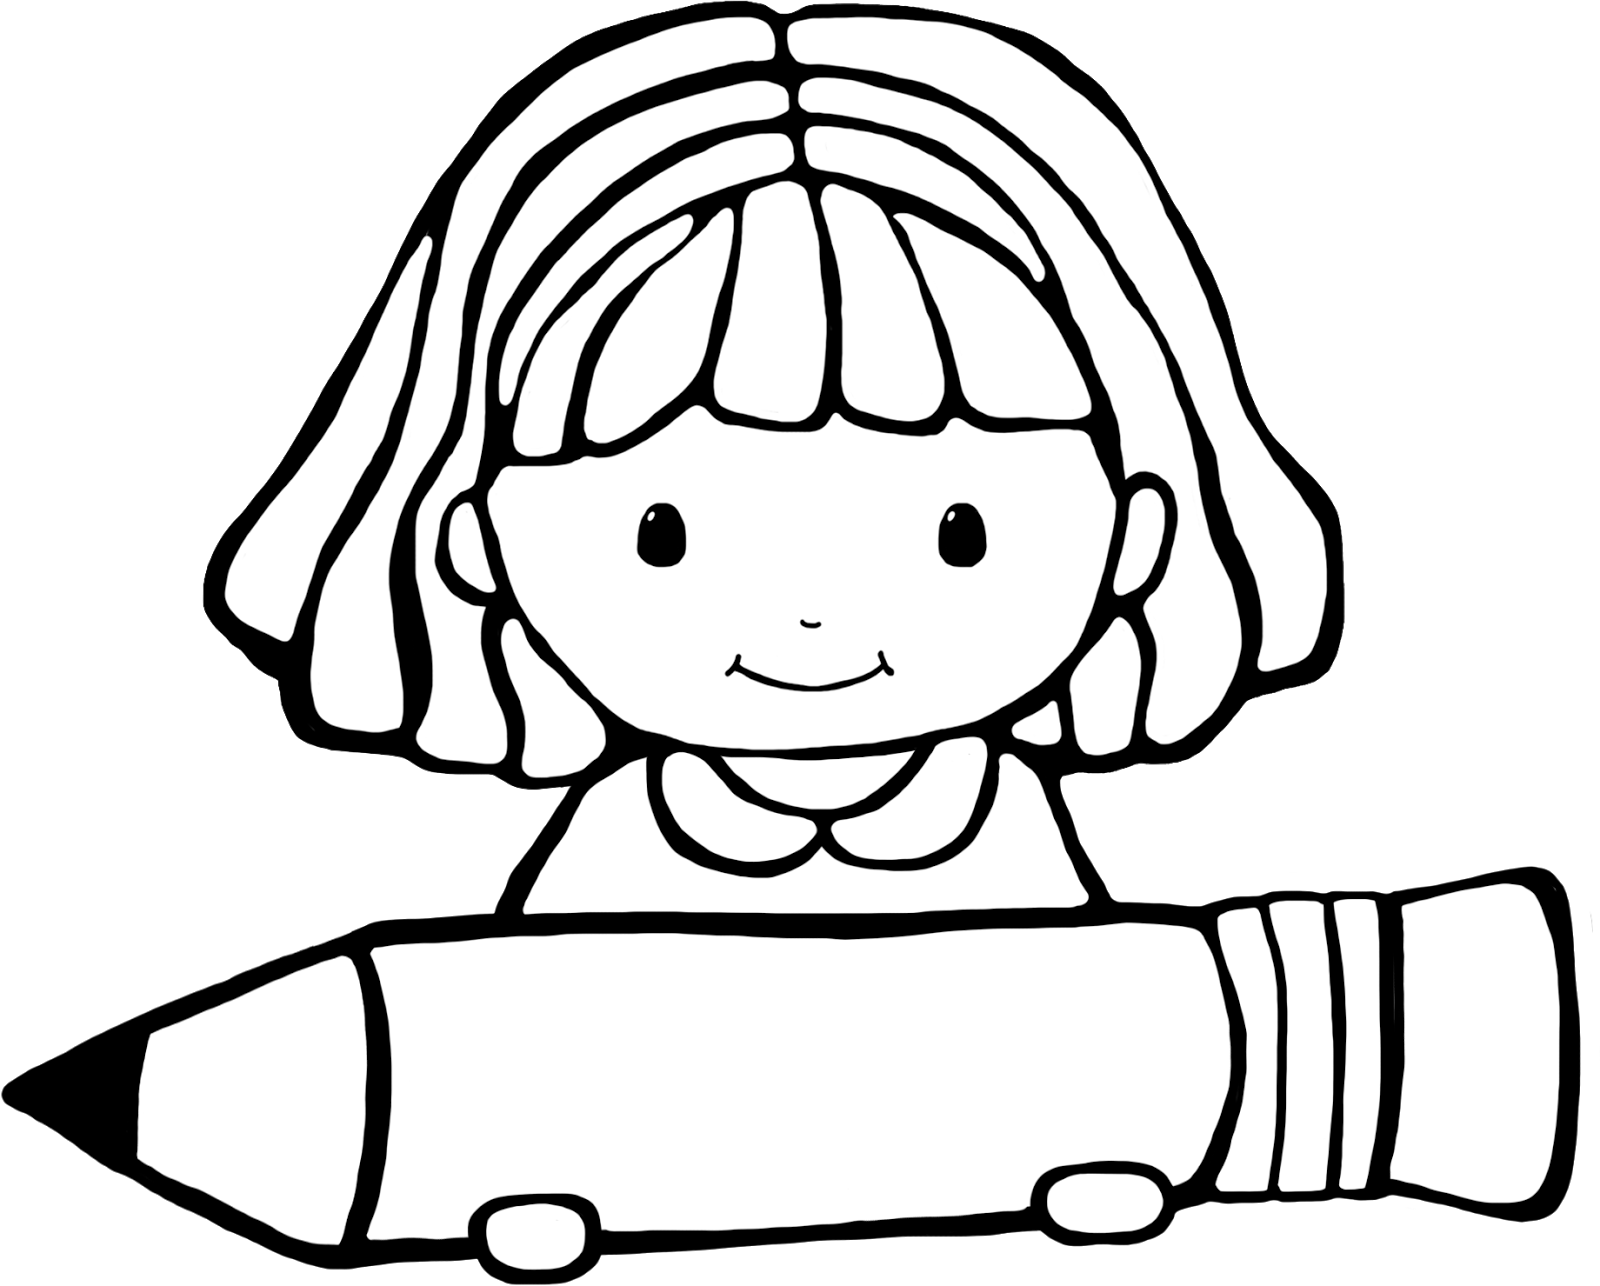 Writing clipart black and white. Image of